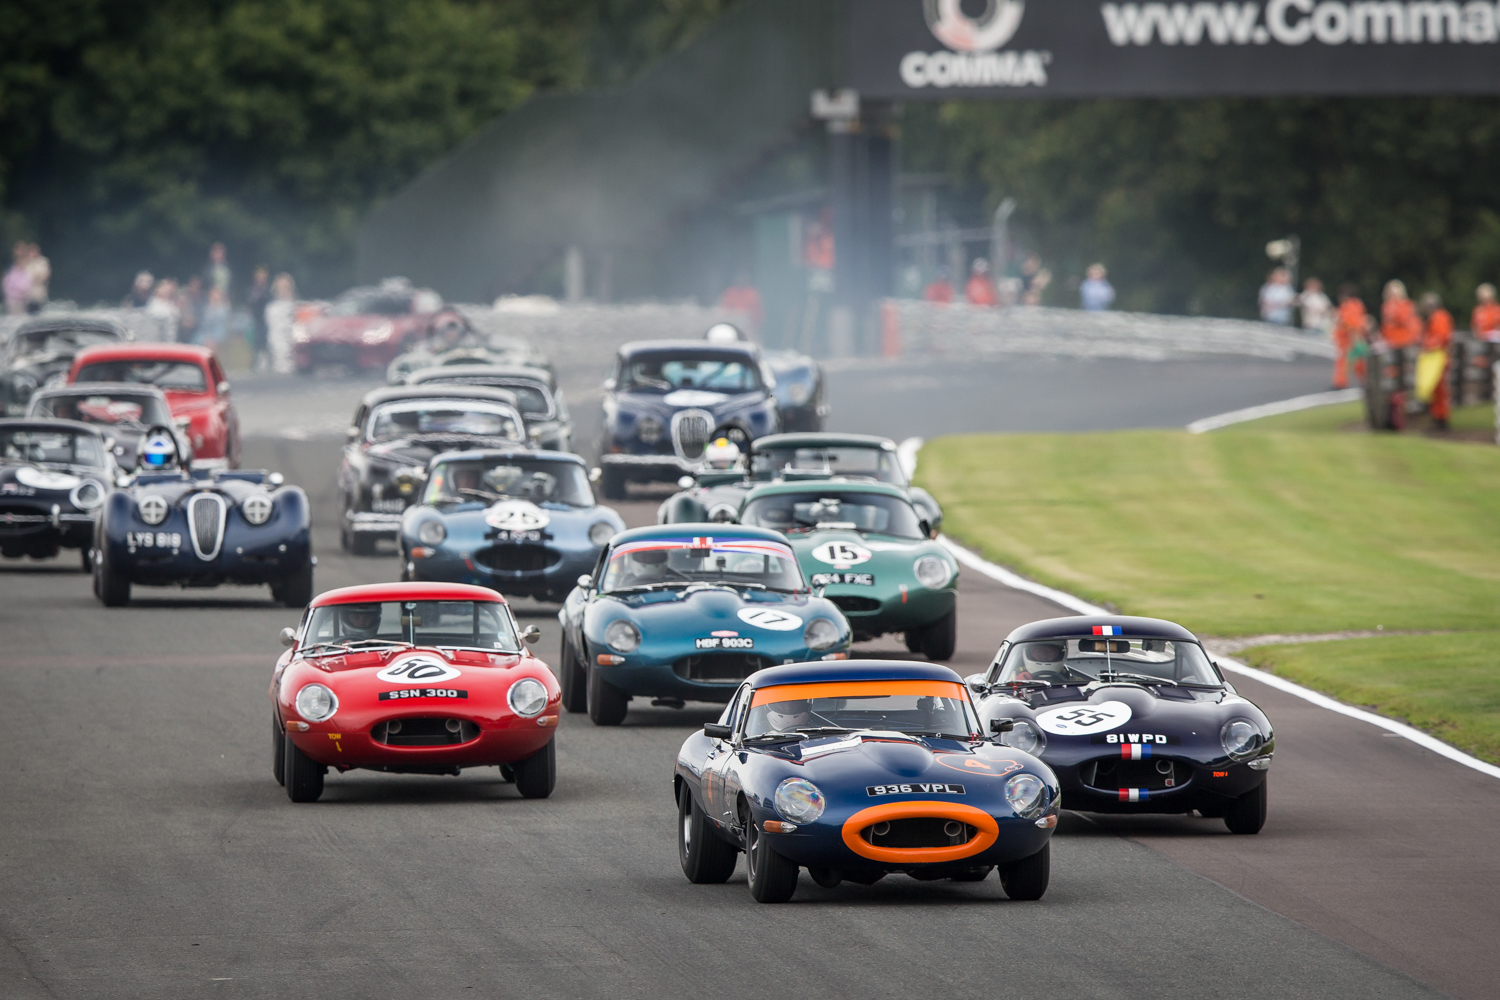 2015 Jaguar Challenge Oulton Park 29th-31st August Chris Brown